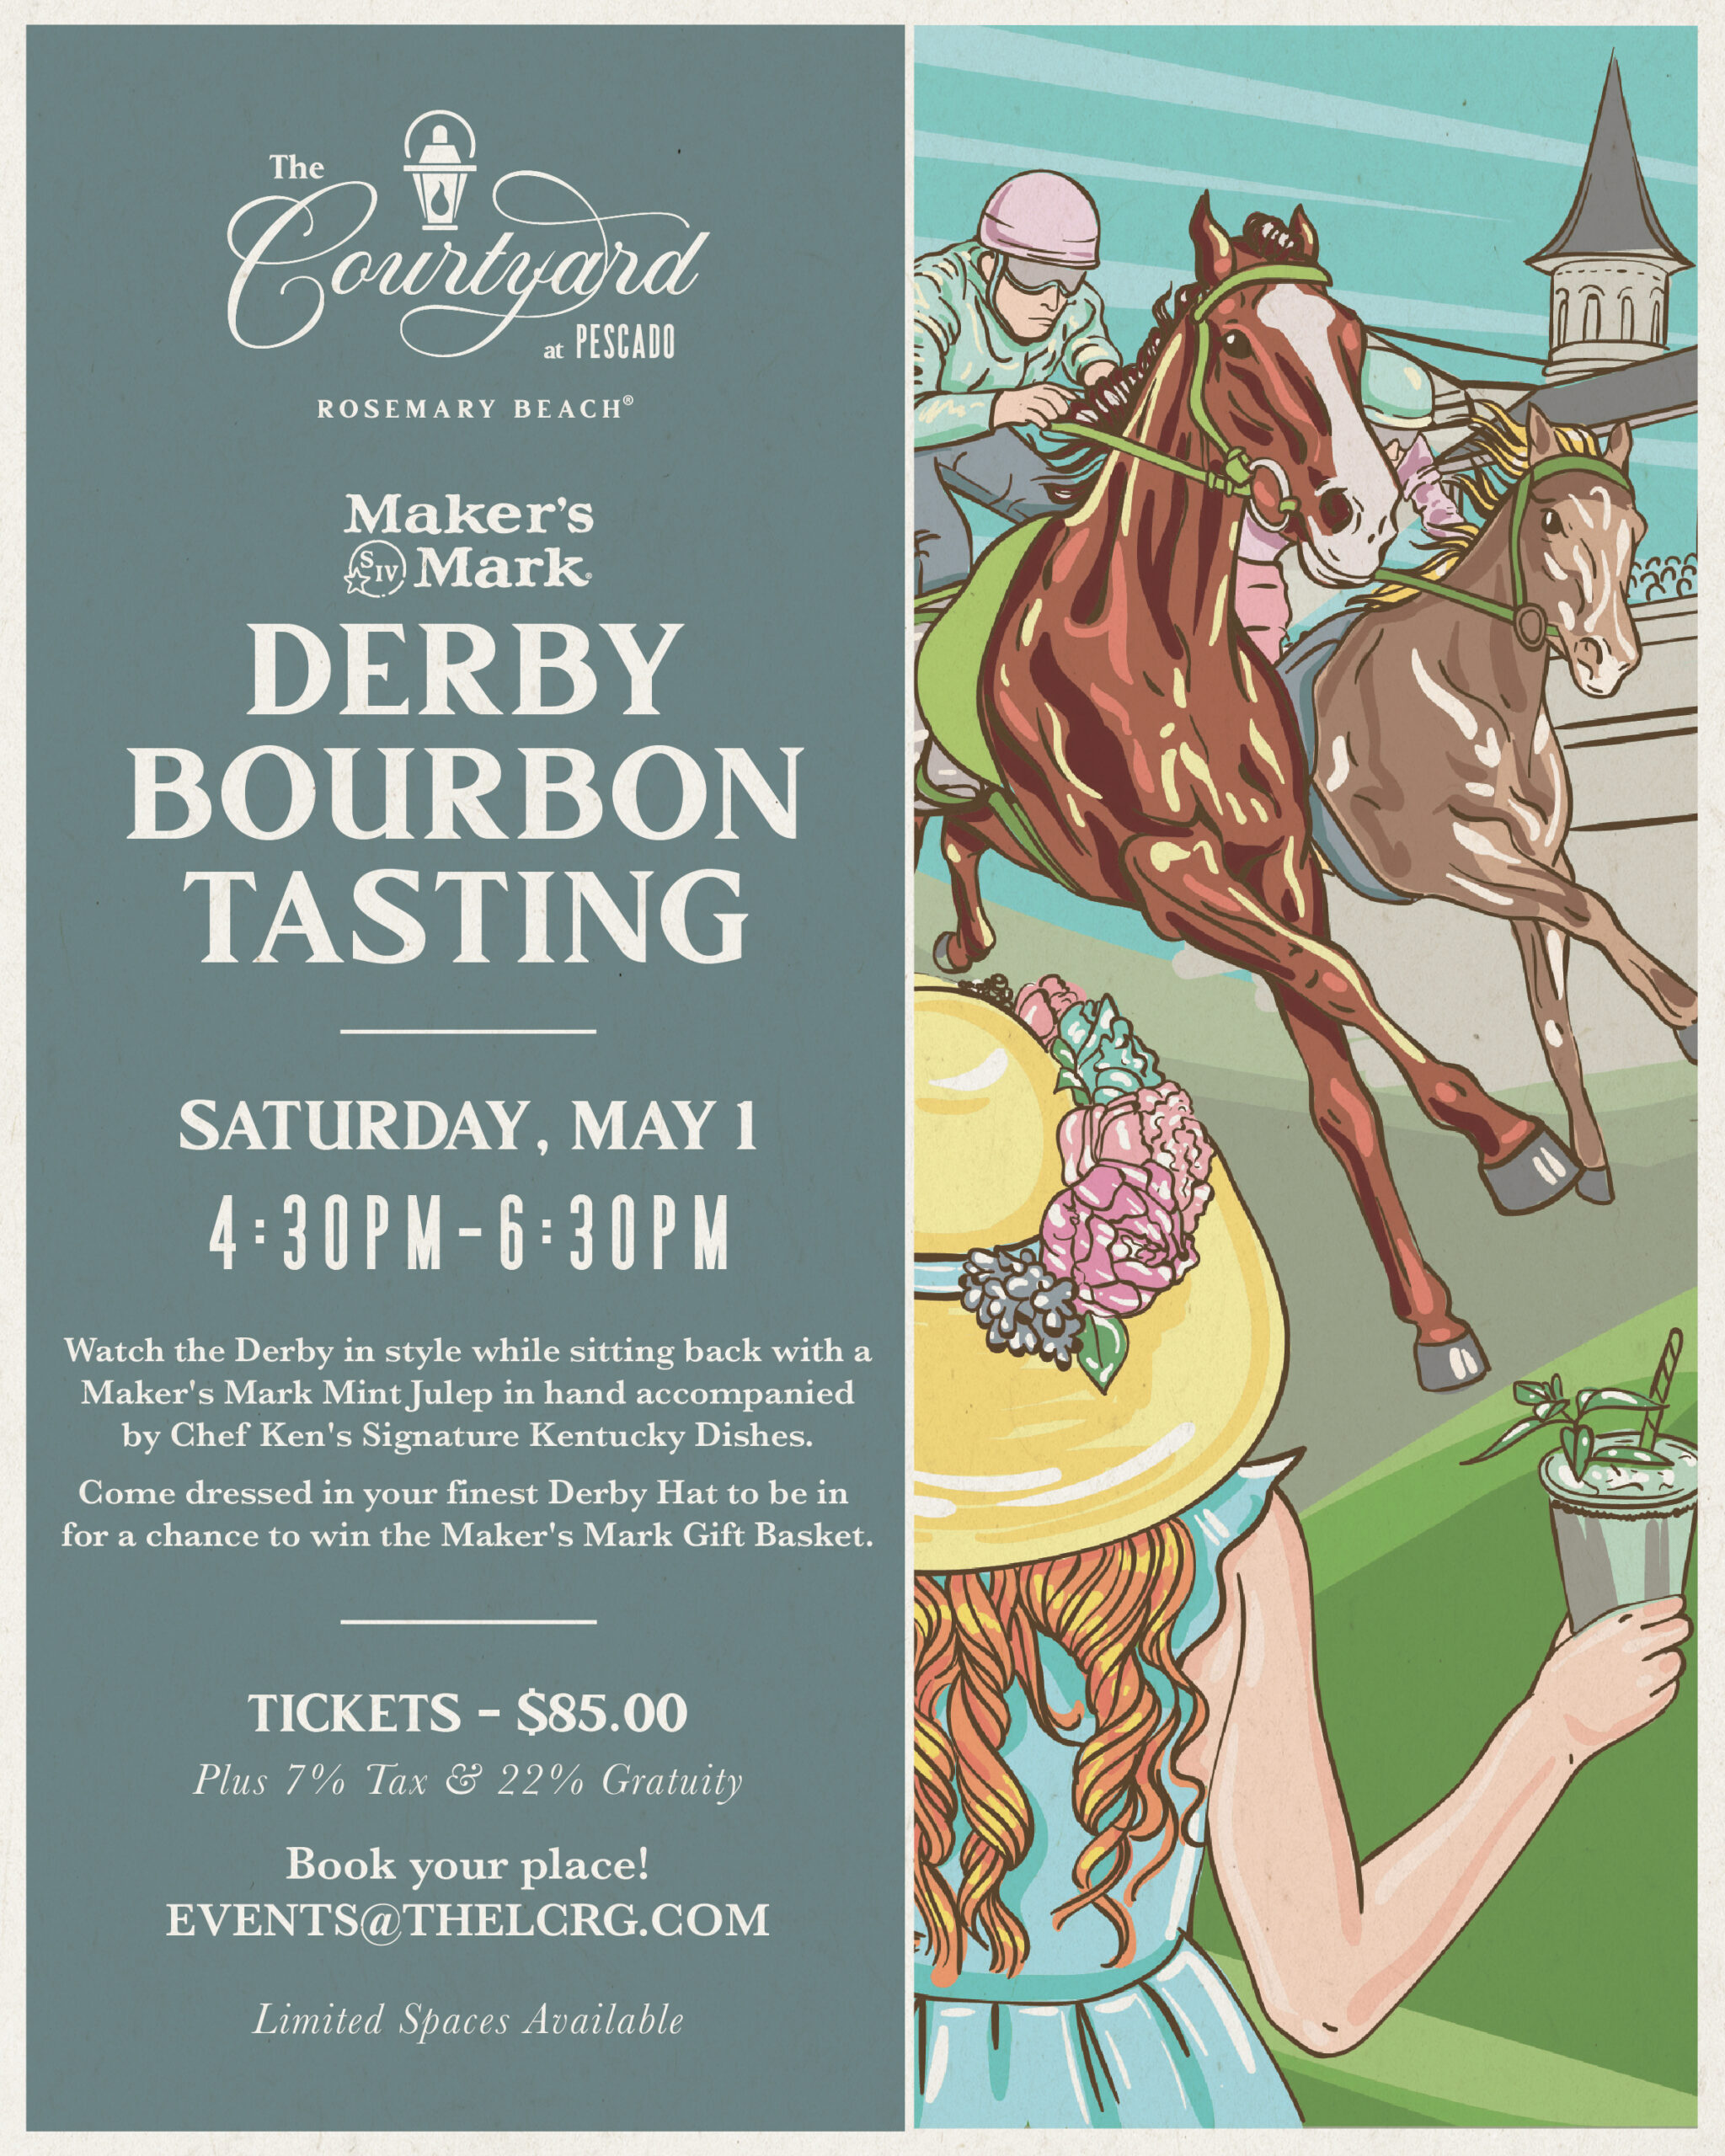 Derby Bourbon Tasting at The Courtyard at Pescado